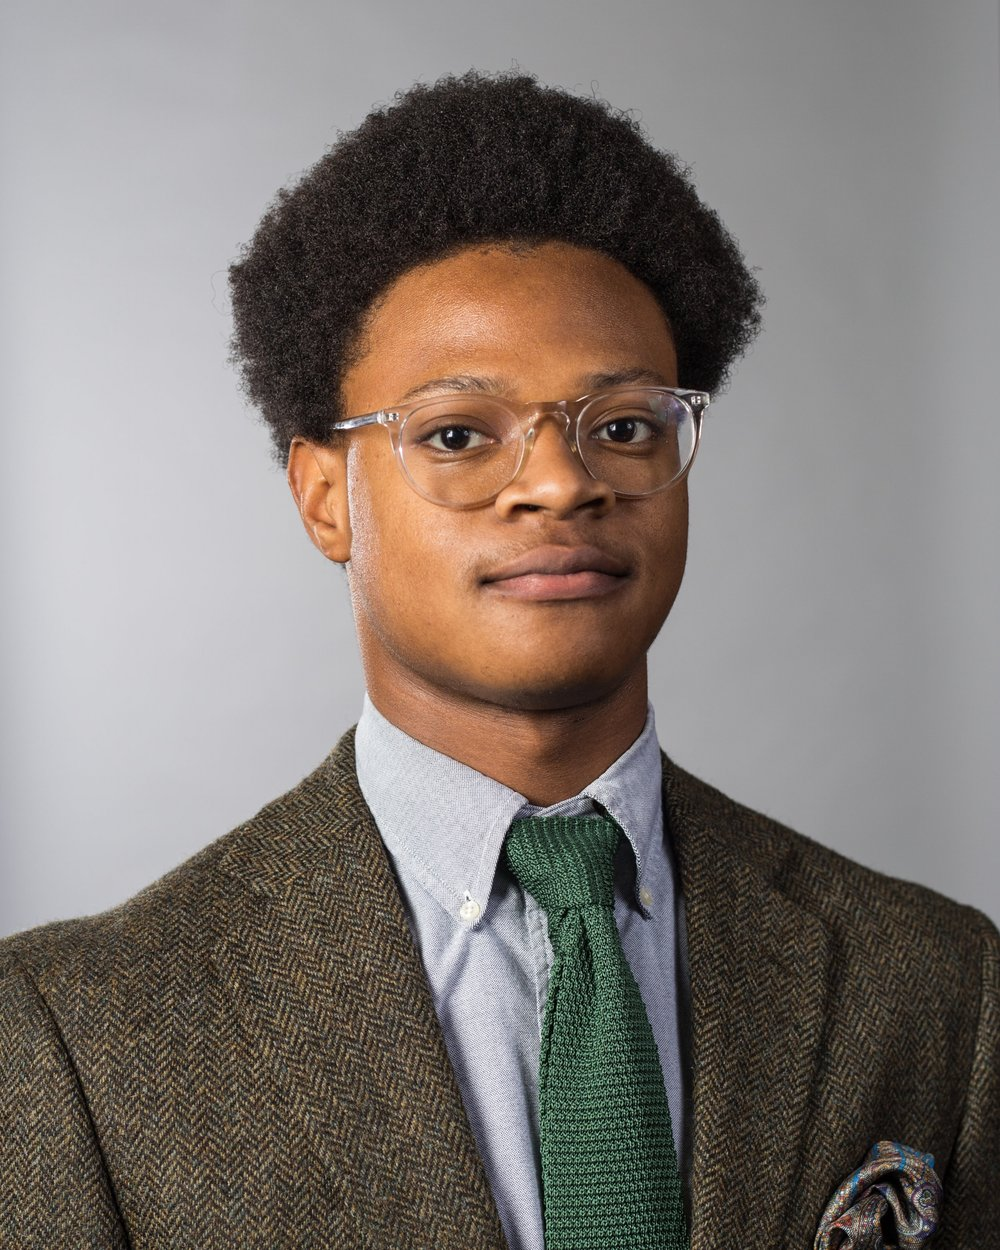 Chair of Communications:  Rashad Johnson